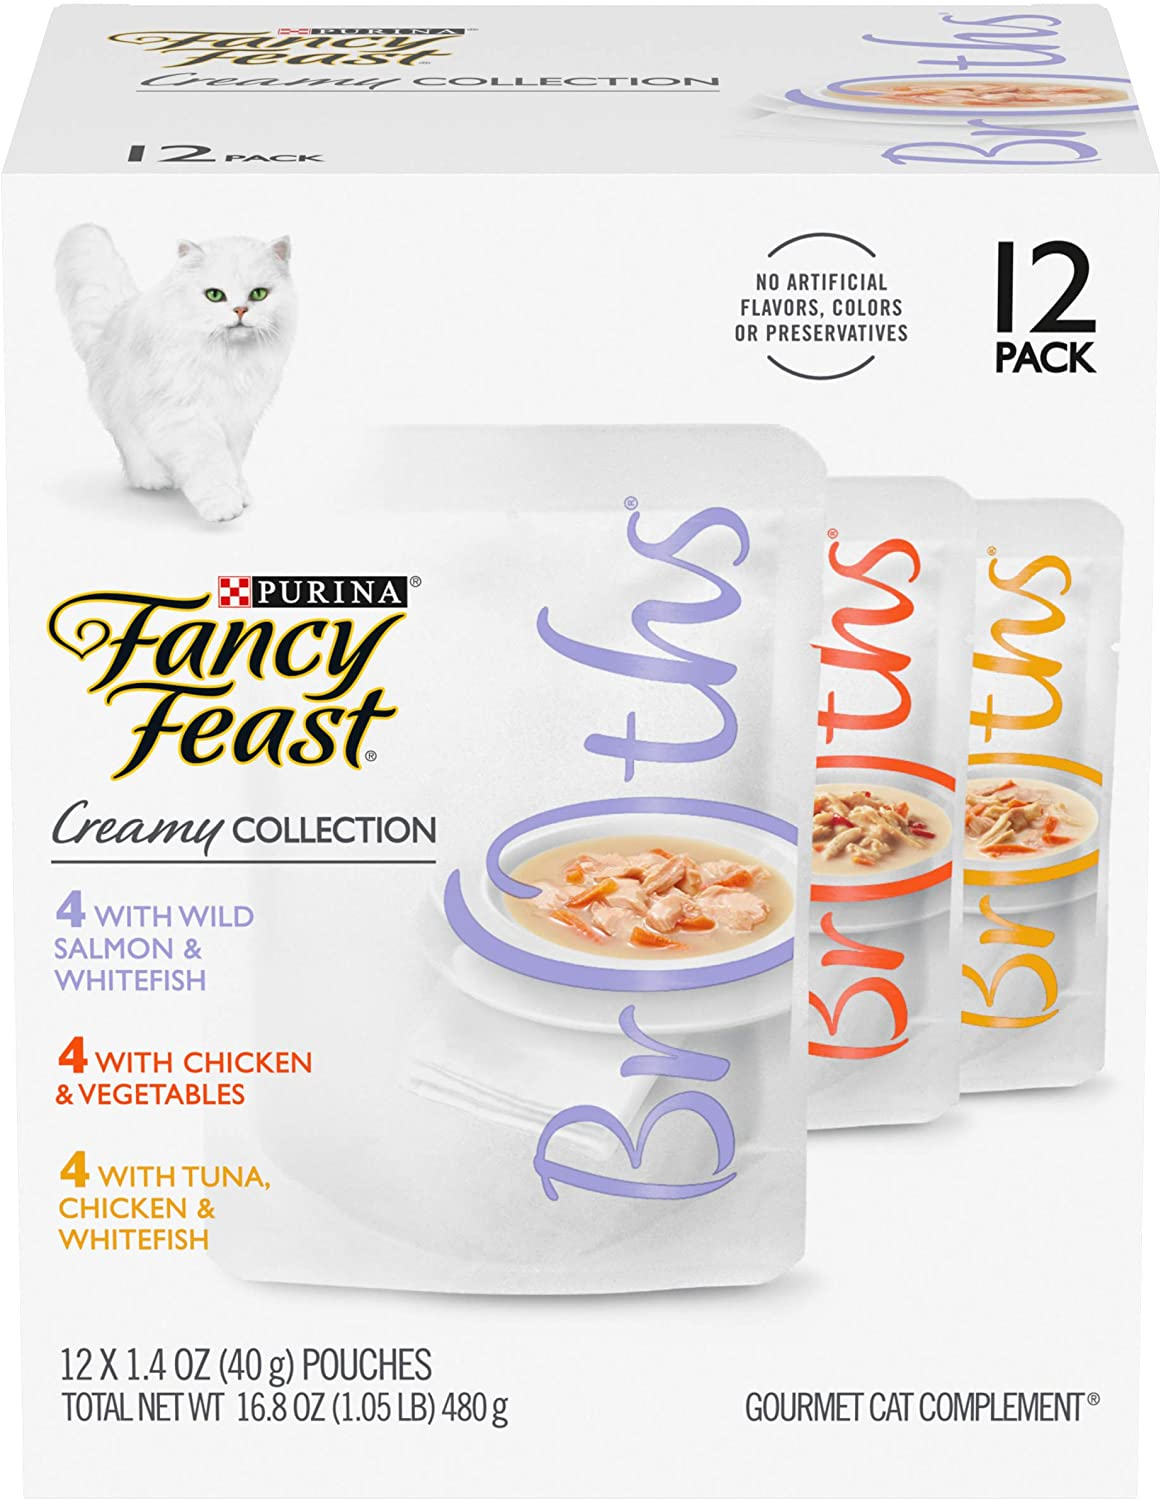 Purina Fancy Feast Grain Free Wet Cat Food Variety Pack, Broths Creamy Collection - (12) 1.4 oz. Pouches